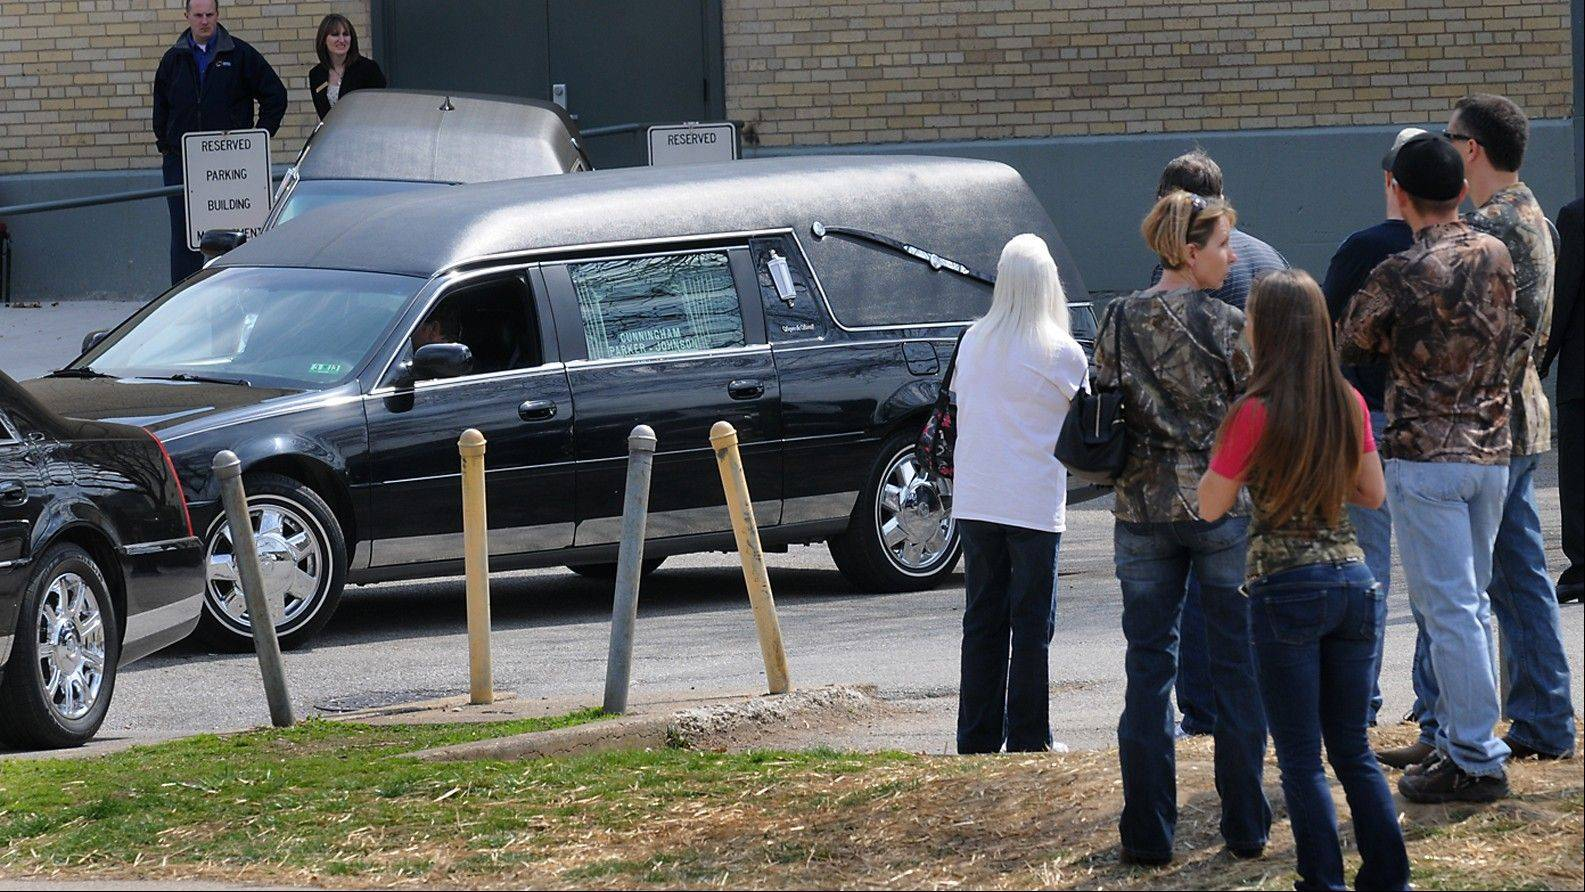 A hearse leaves the Municipal Auditorium in Charleston, W.Va. after a joint funeral for �Buckwild� star Shain Gandee and his uncle David Gandee Sunday afternoon. Gandee, his 48-year-old uncle, David Gandee, and 27-year-old friend Donald Robert Myers were found dead April 1 in a sport utility vehicle that was partially submerged in a deep mud pit near Sissonville.